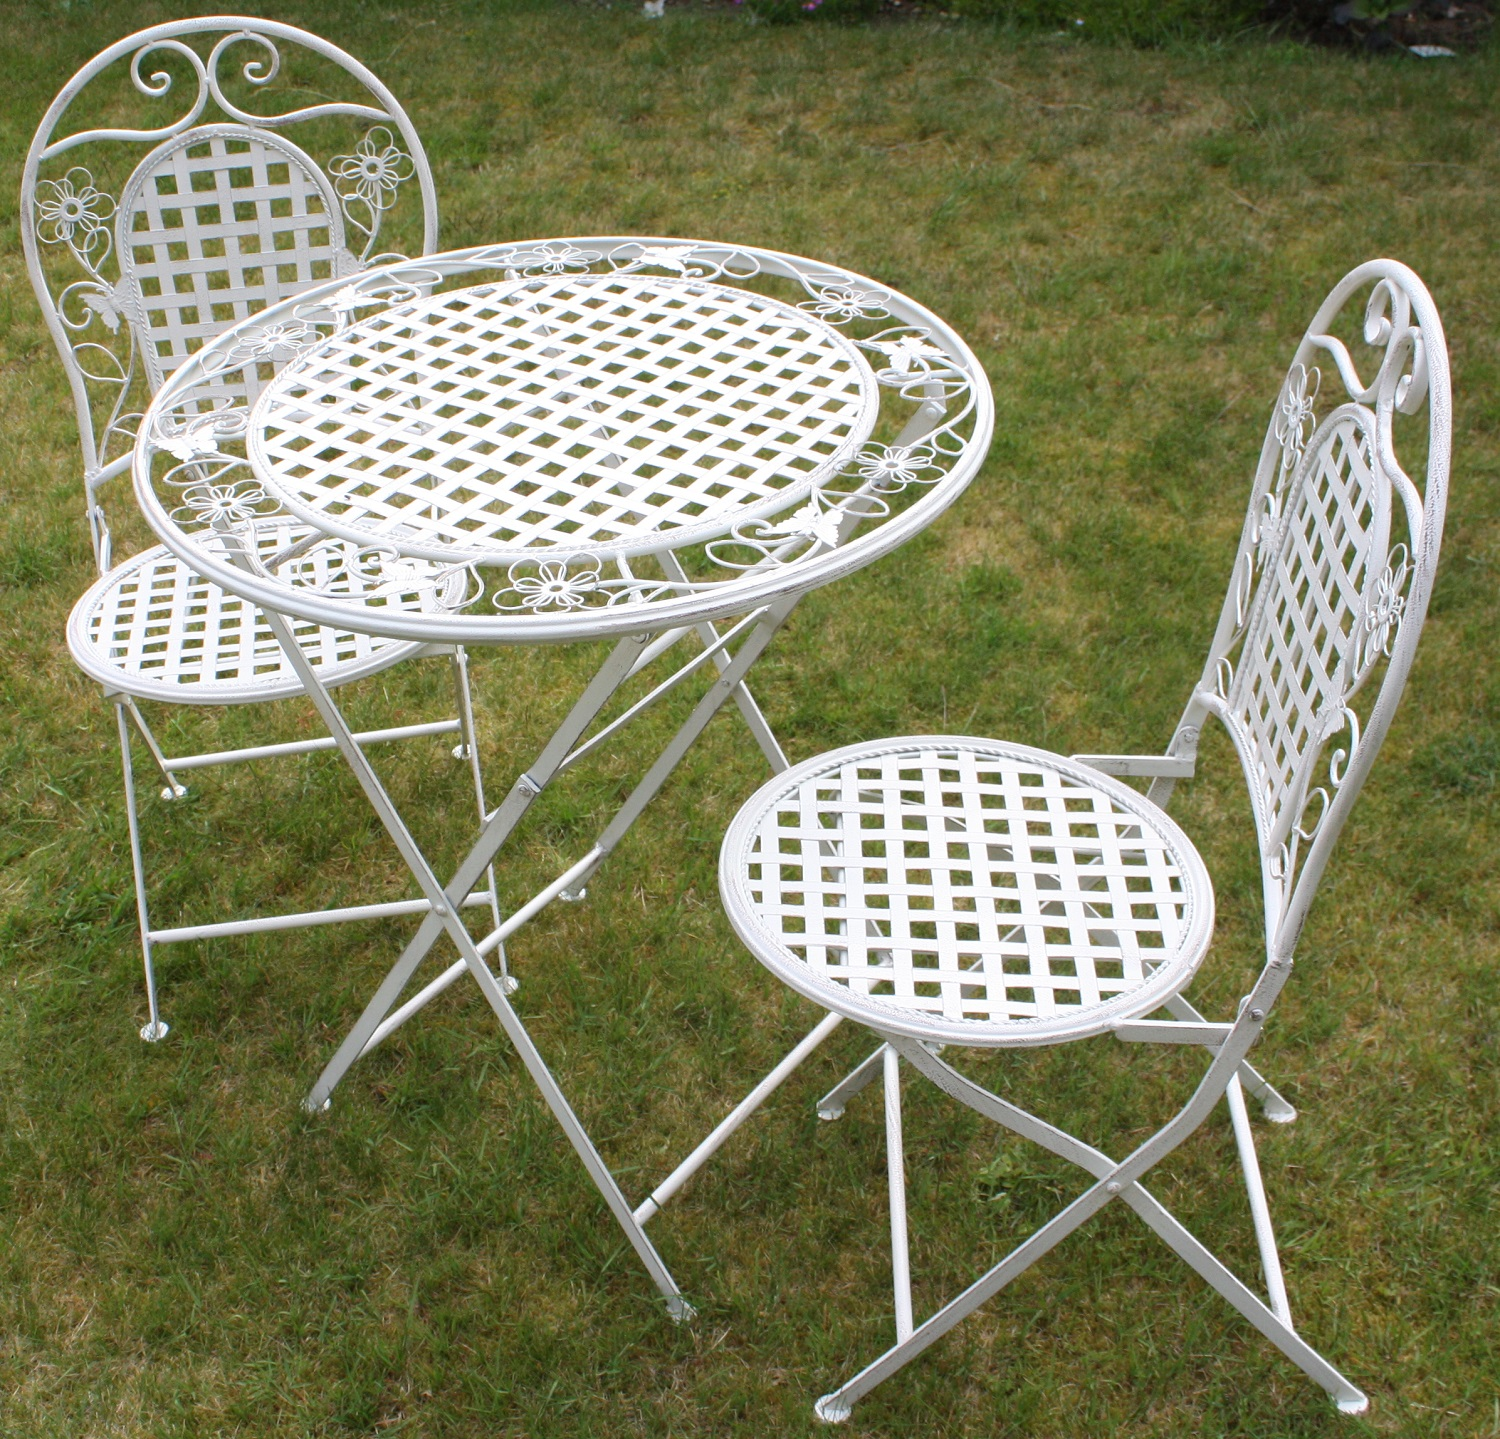 White floral outdoor folding metal round table and chairs for Small metal patio set